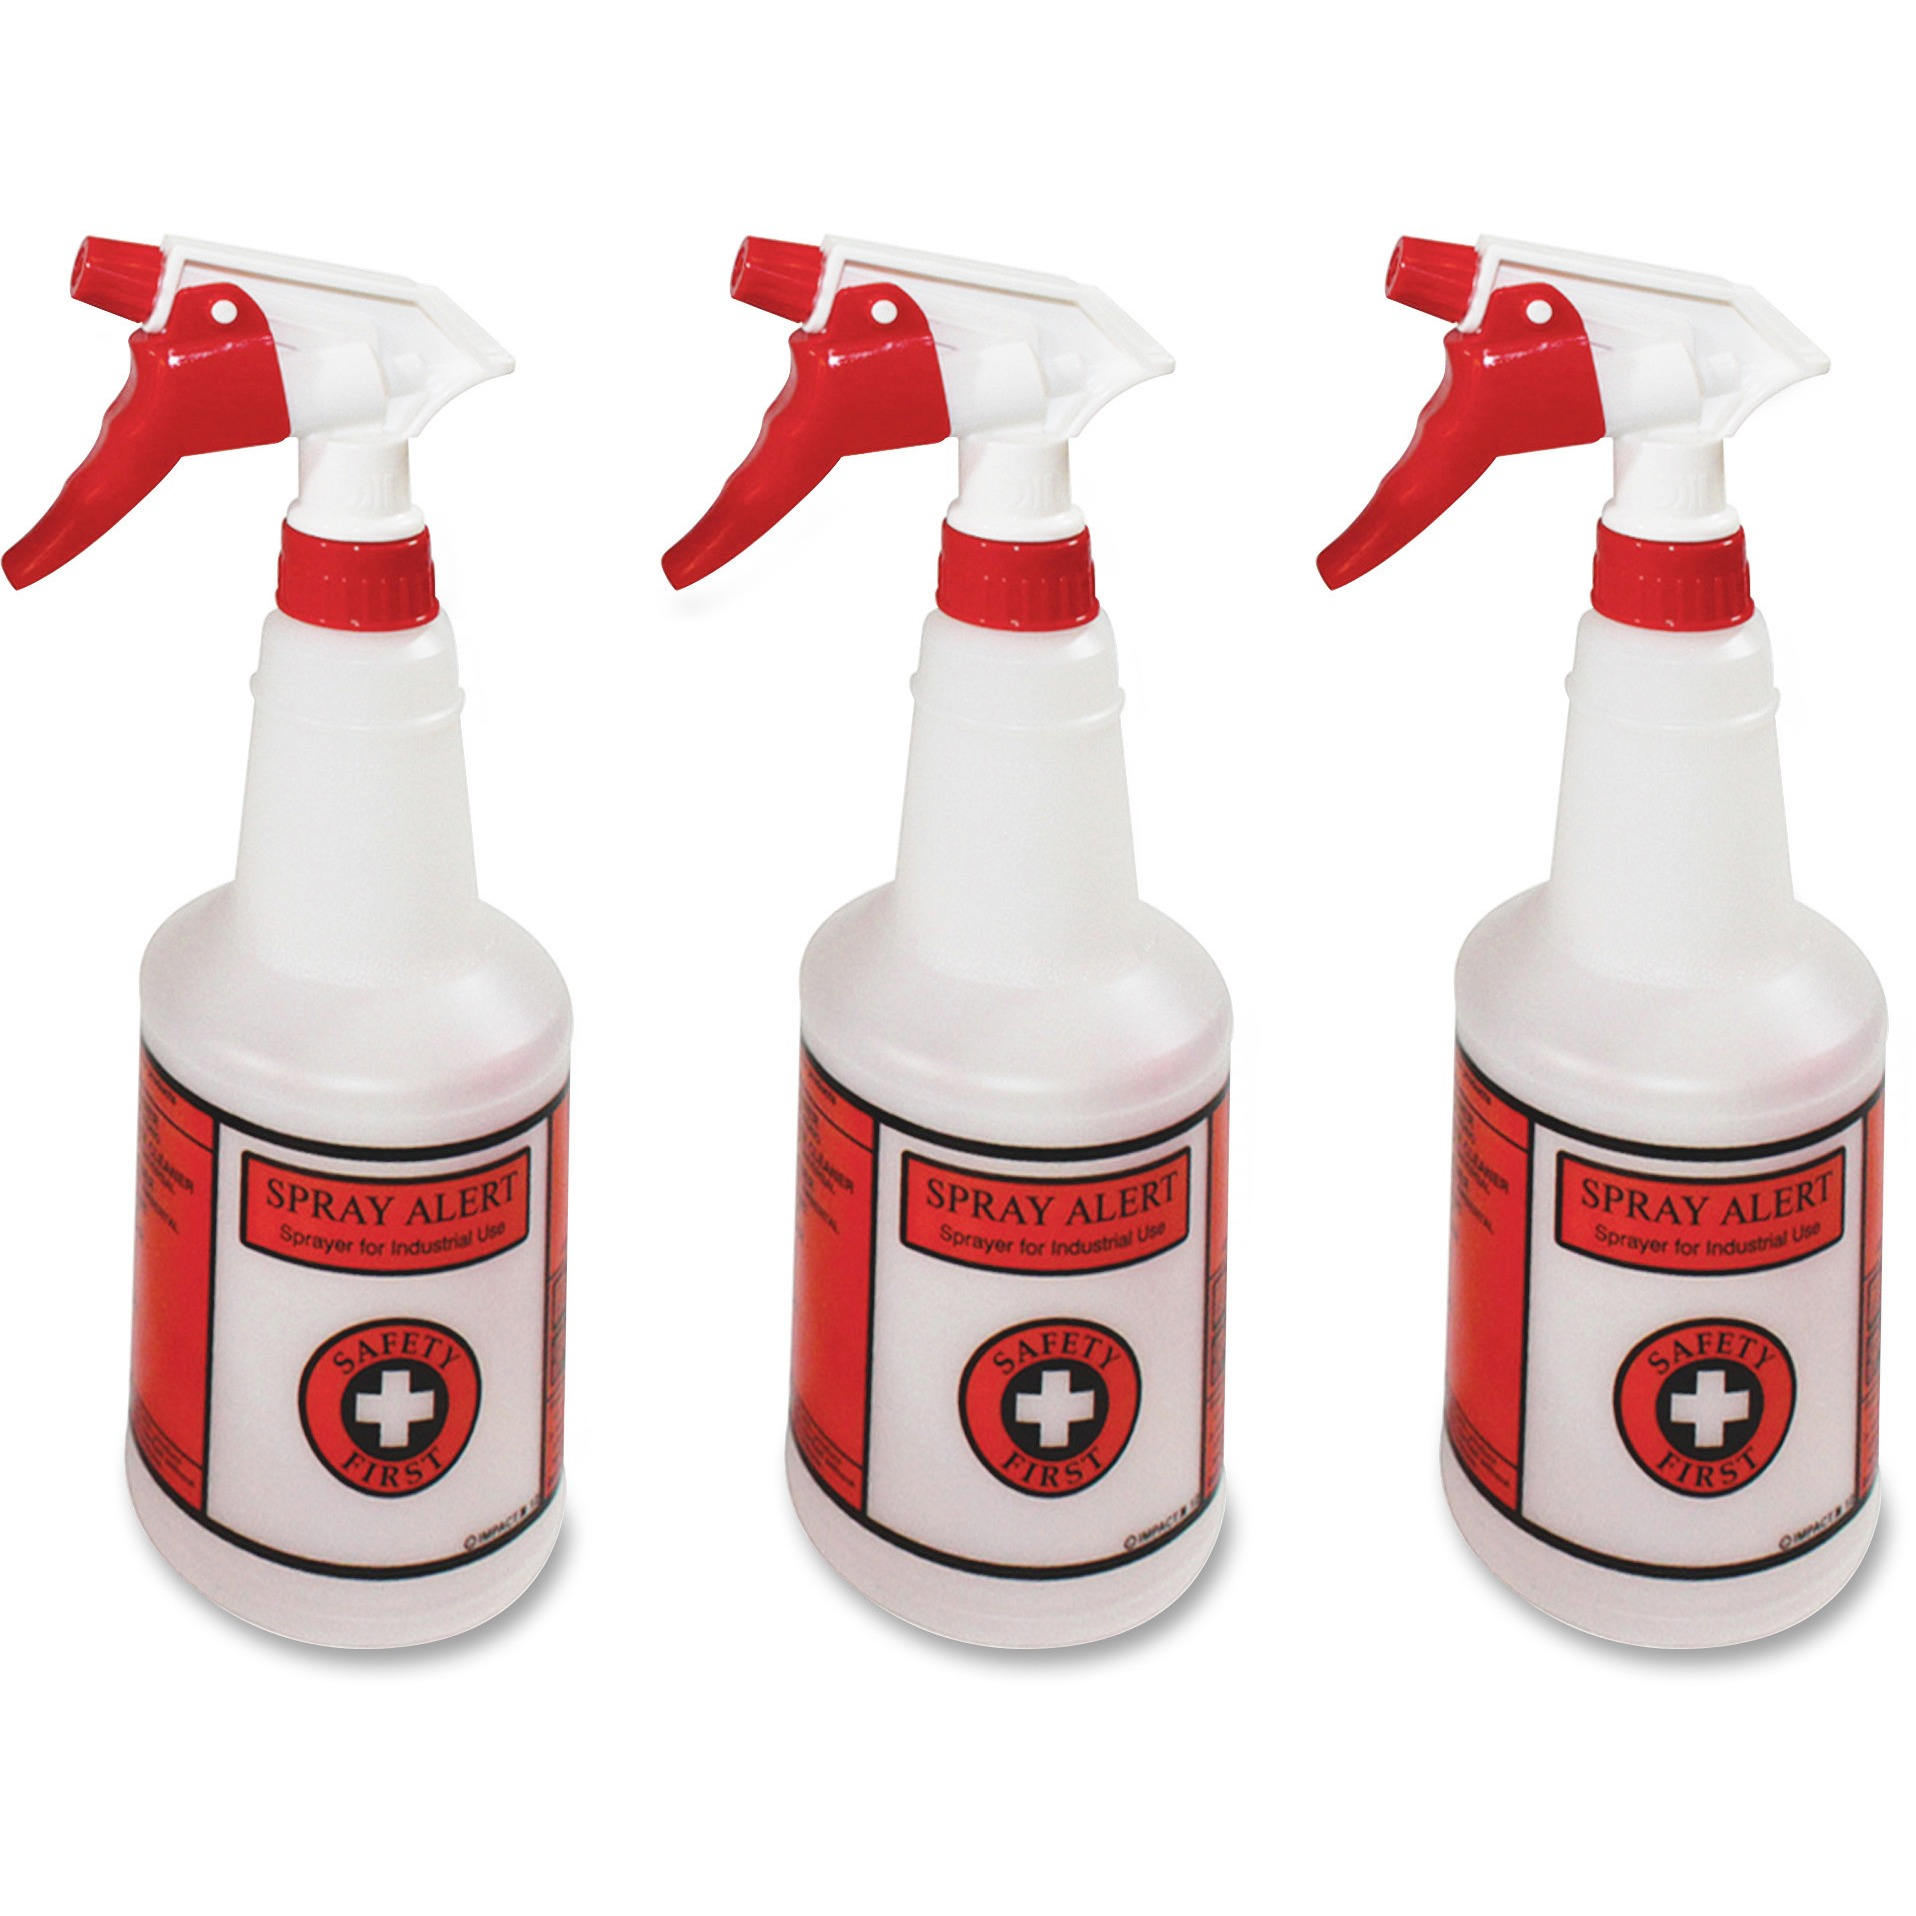 Spray Alert, IMP5024SS, Spray Alert System, 3 / Pack, Natural